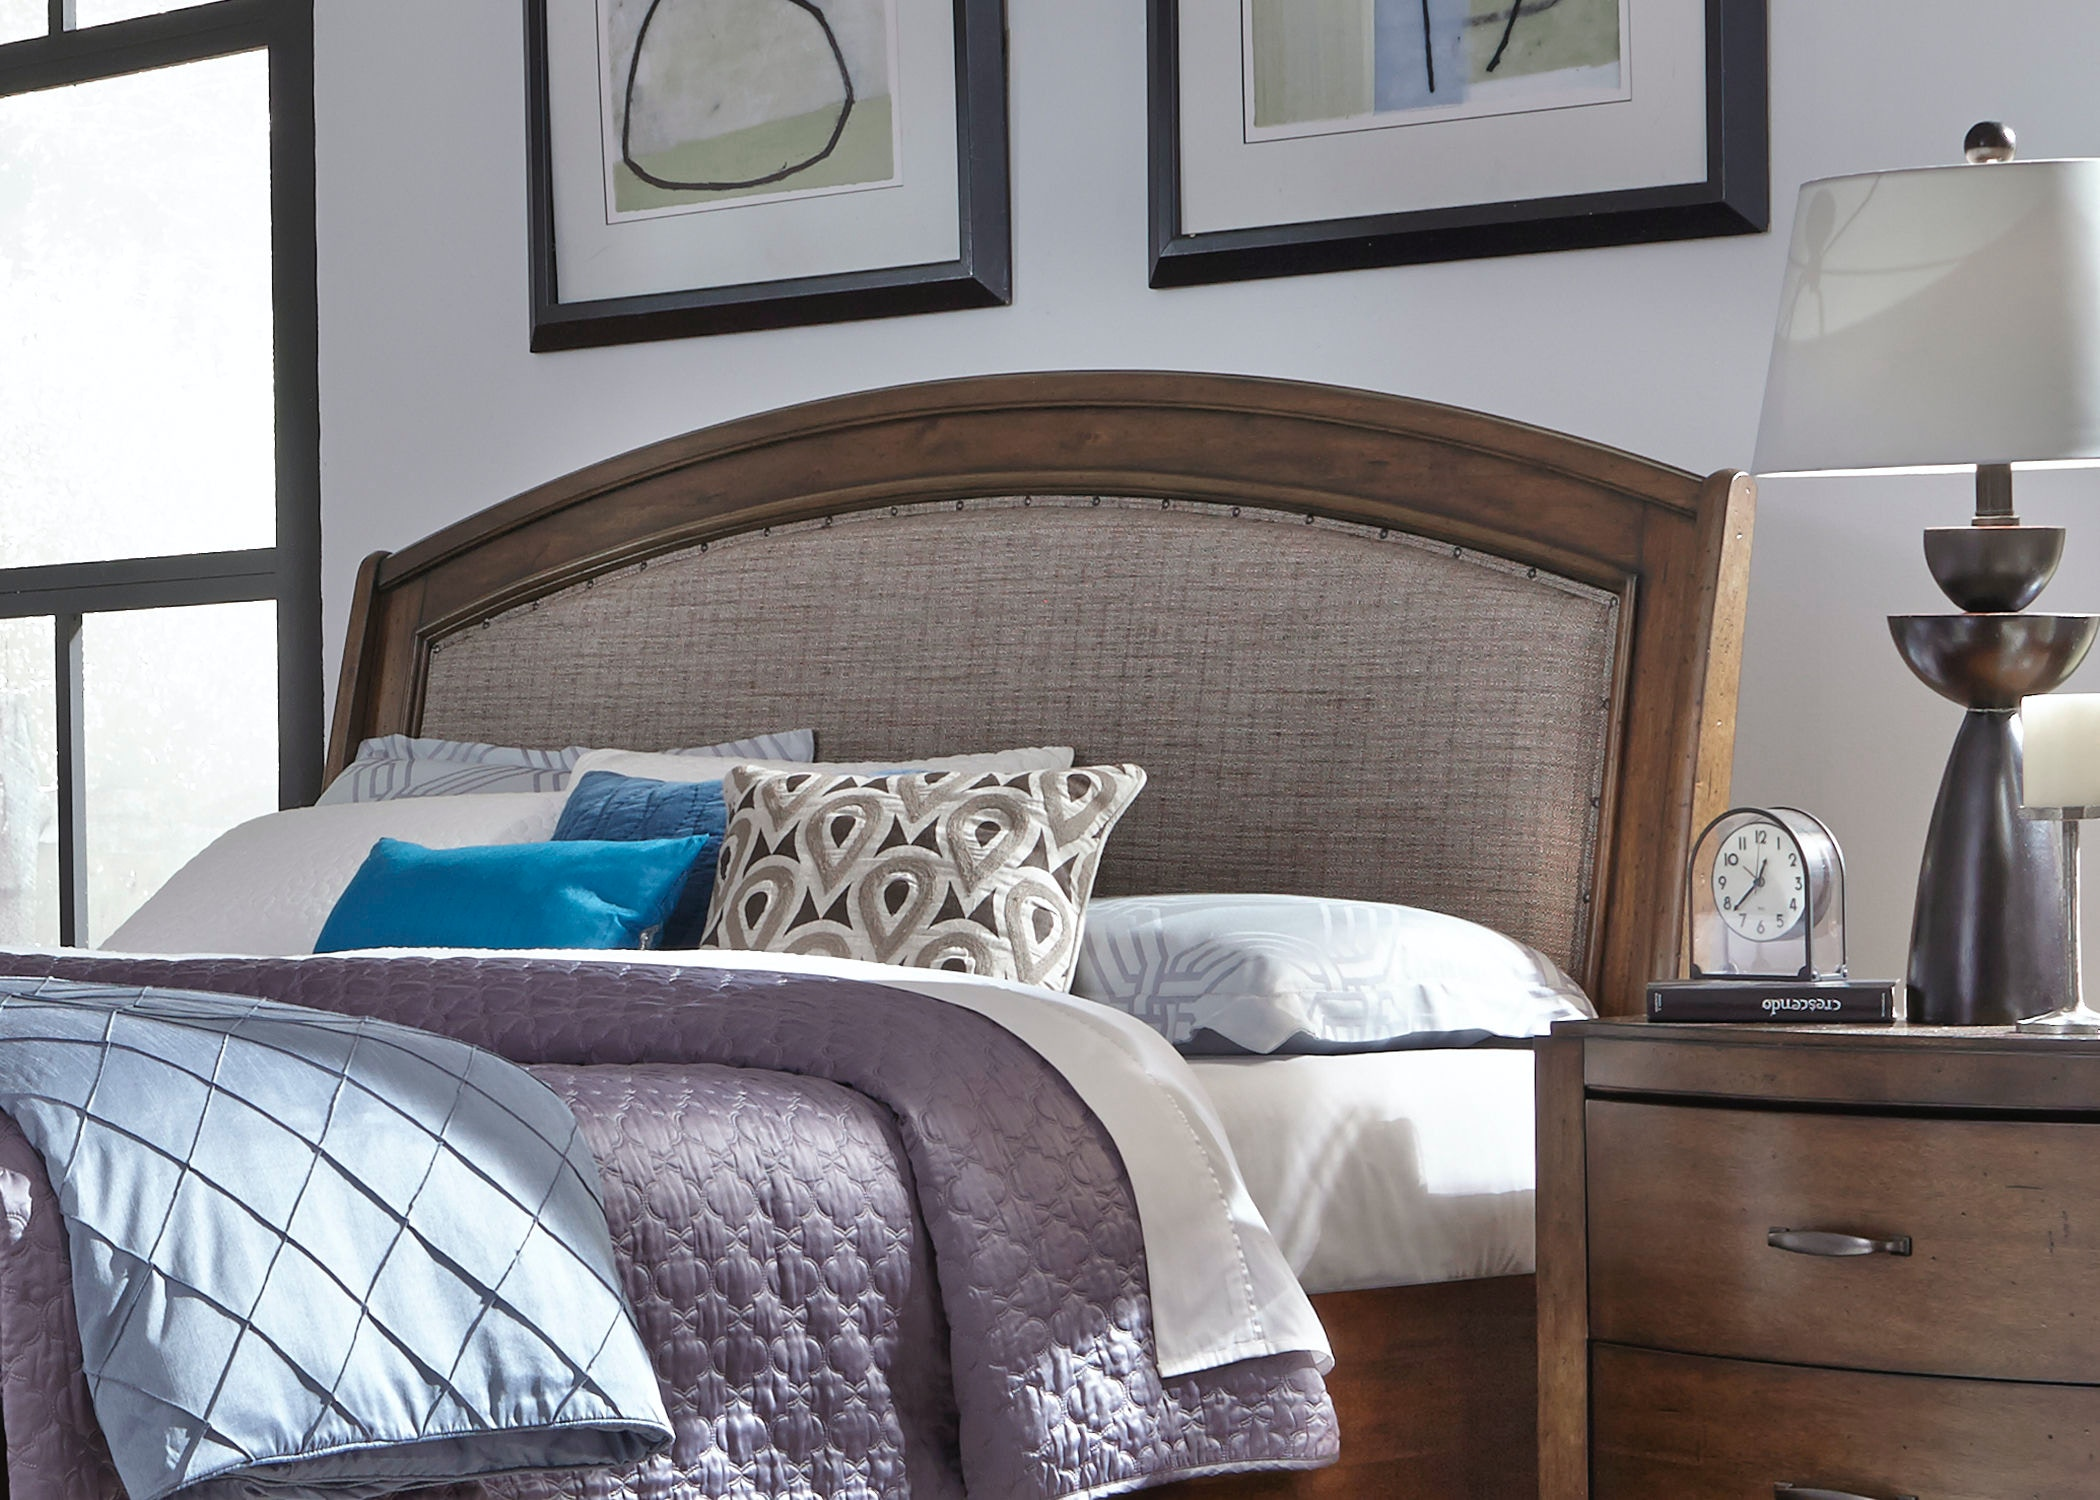 Ordinaire Liberty Furniture Bedroom Queen Upholstered Headboard